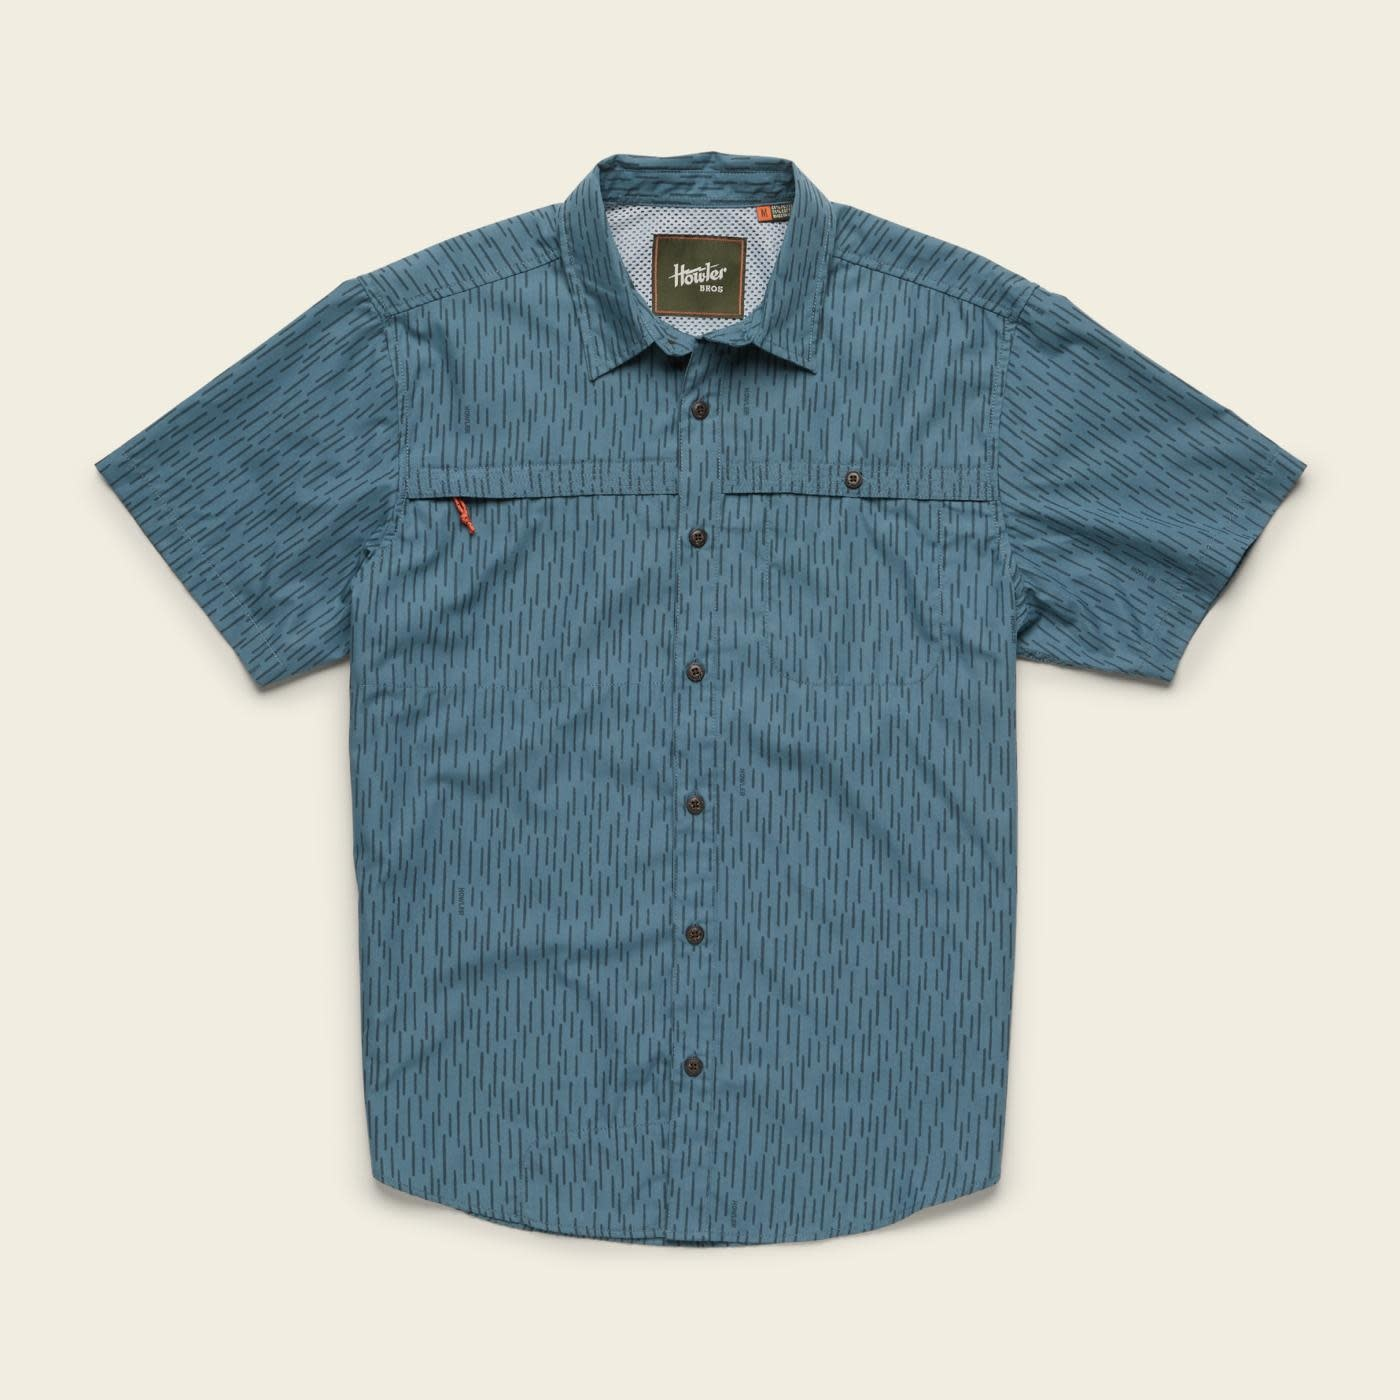 Howler Brothers Howler Brothers Men's Tidepool Tech Tee